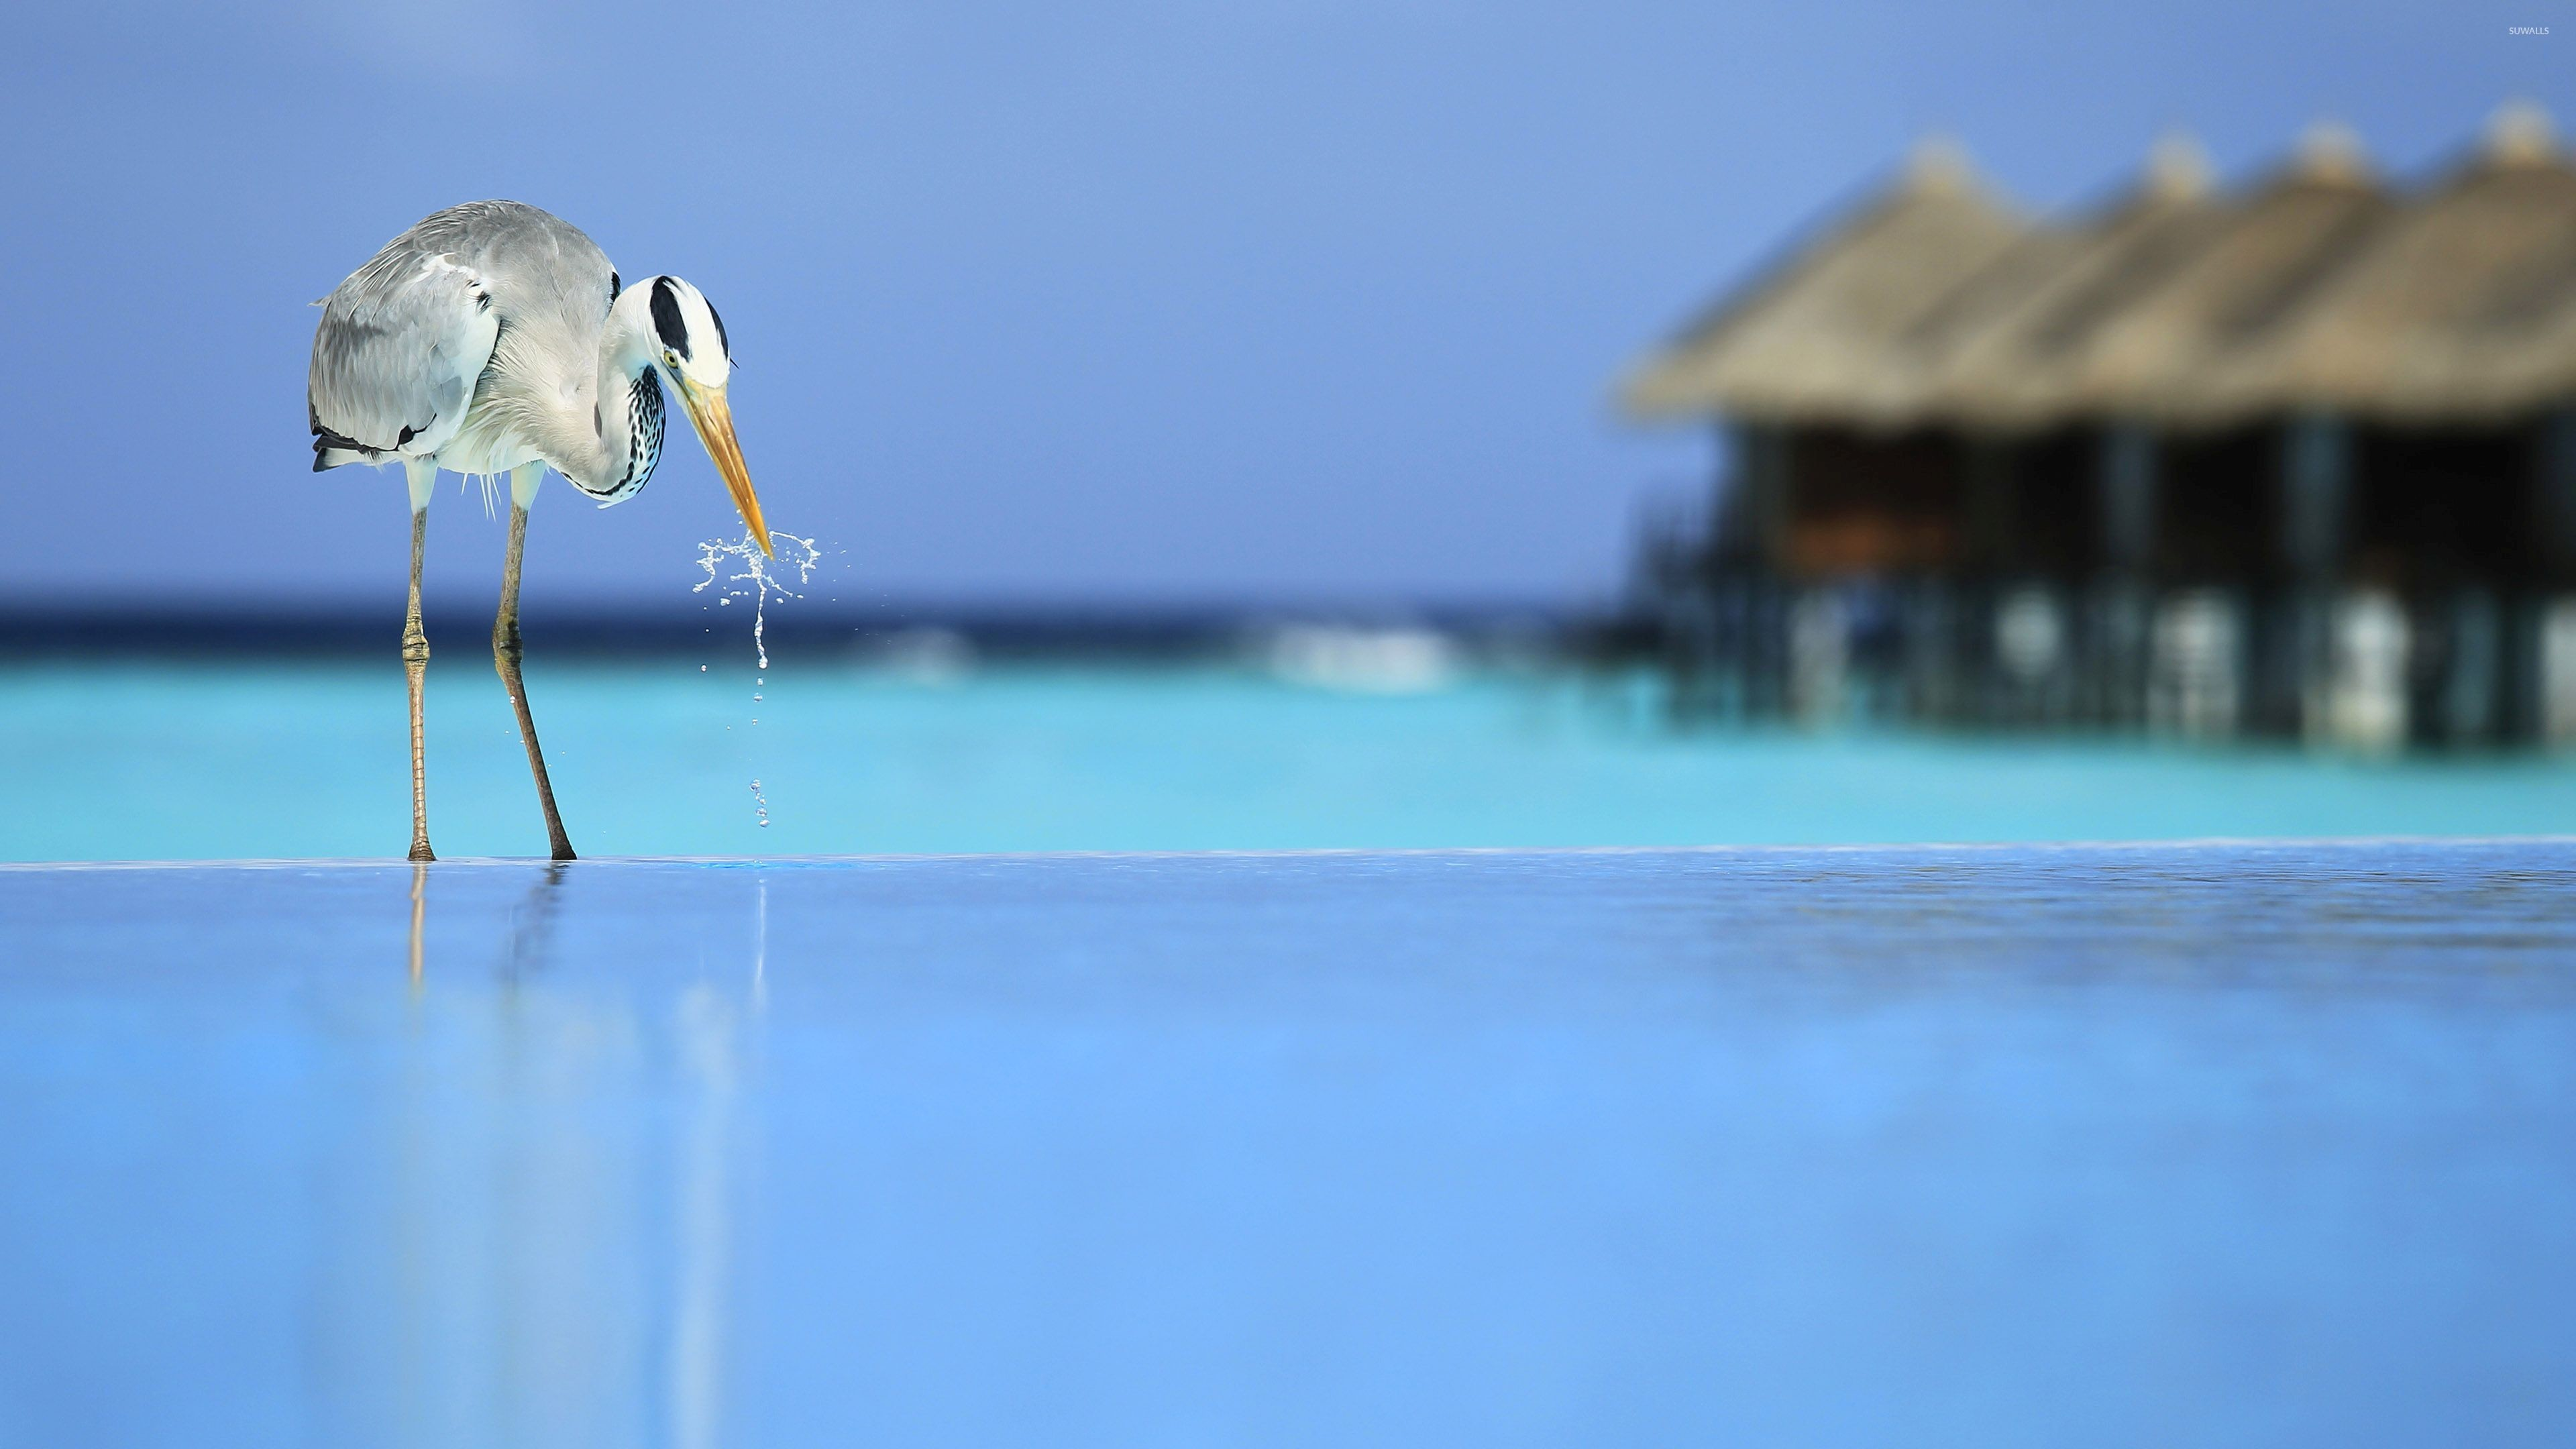 Res: 3840x2160, Bird drinking water from the pool wallpaper